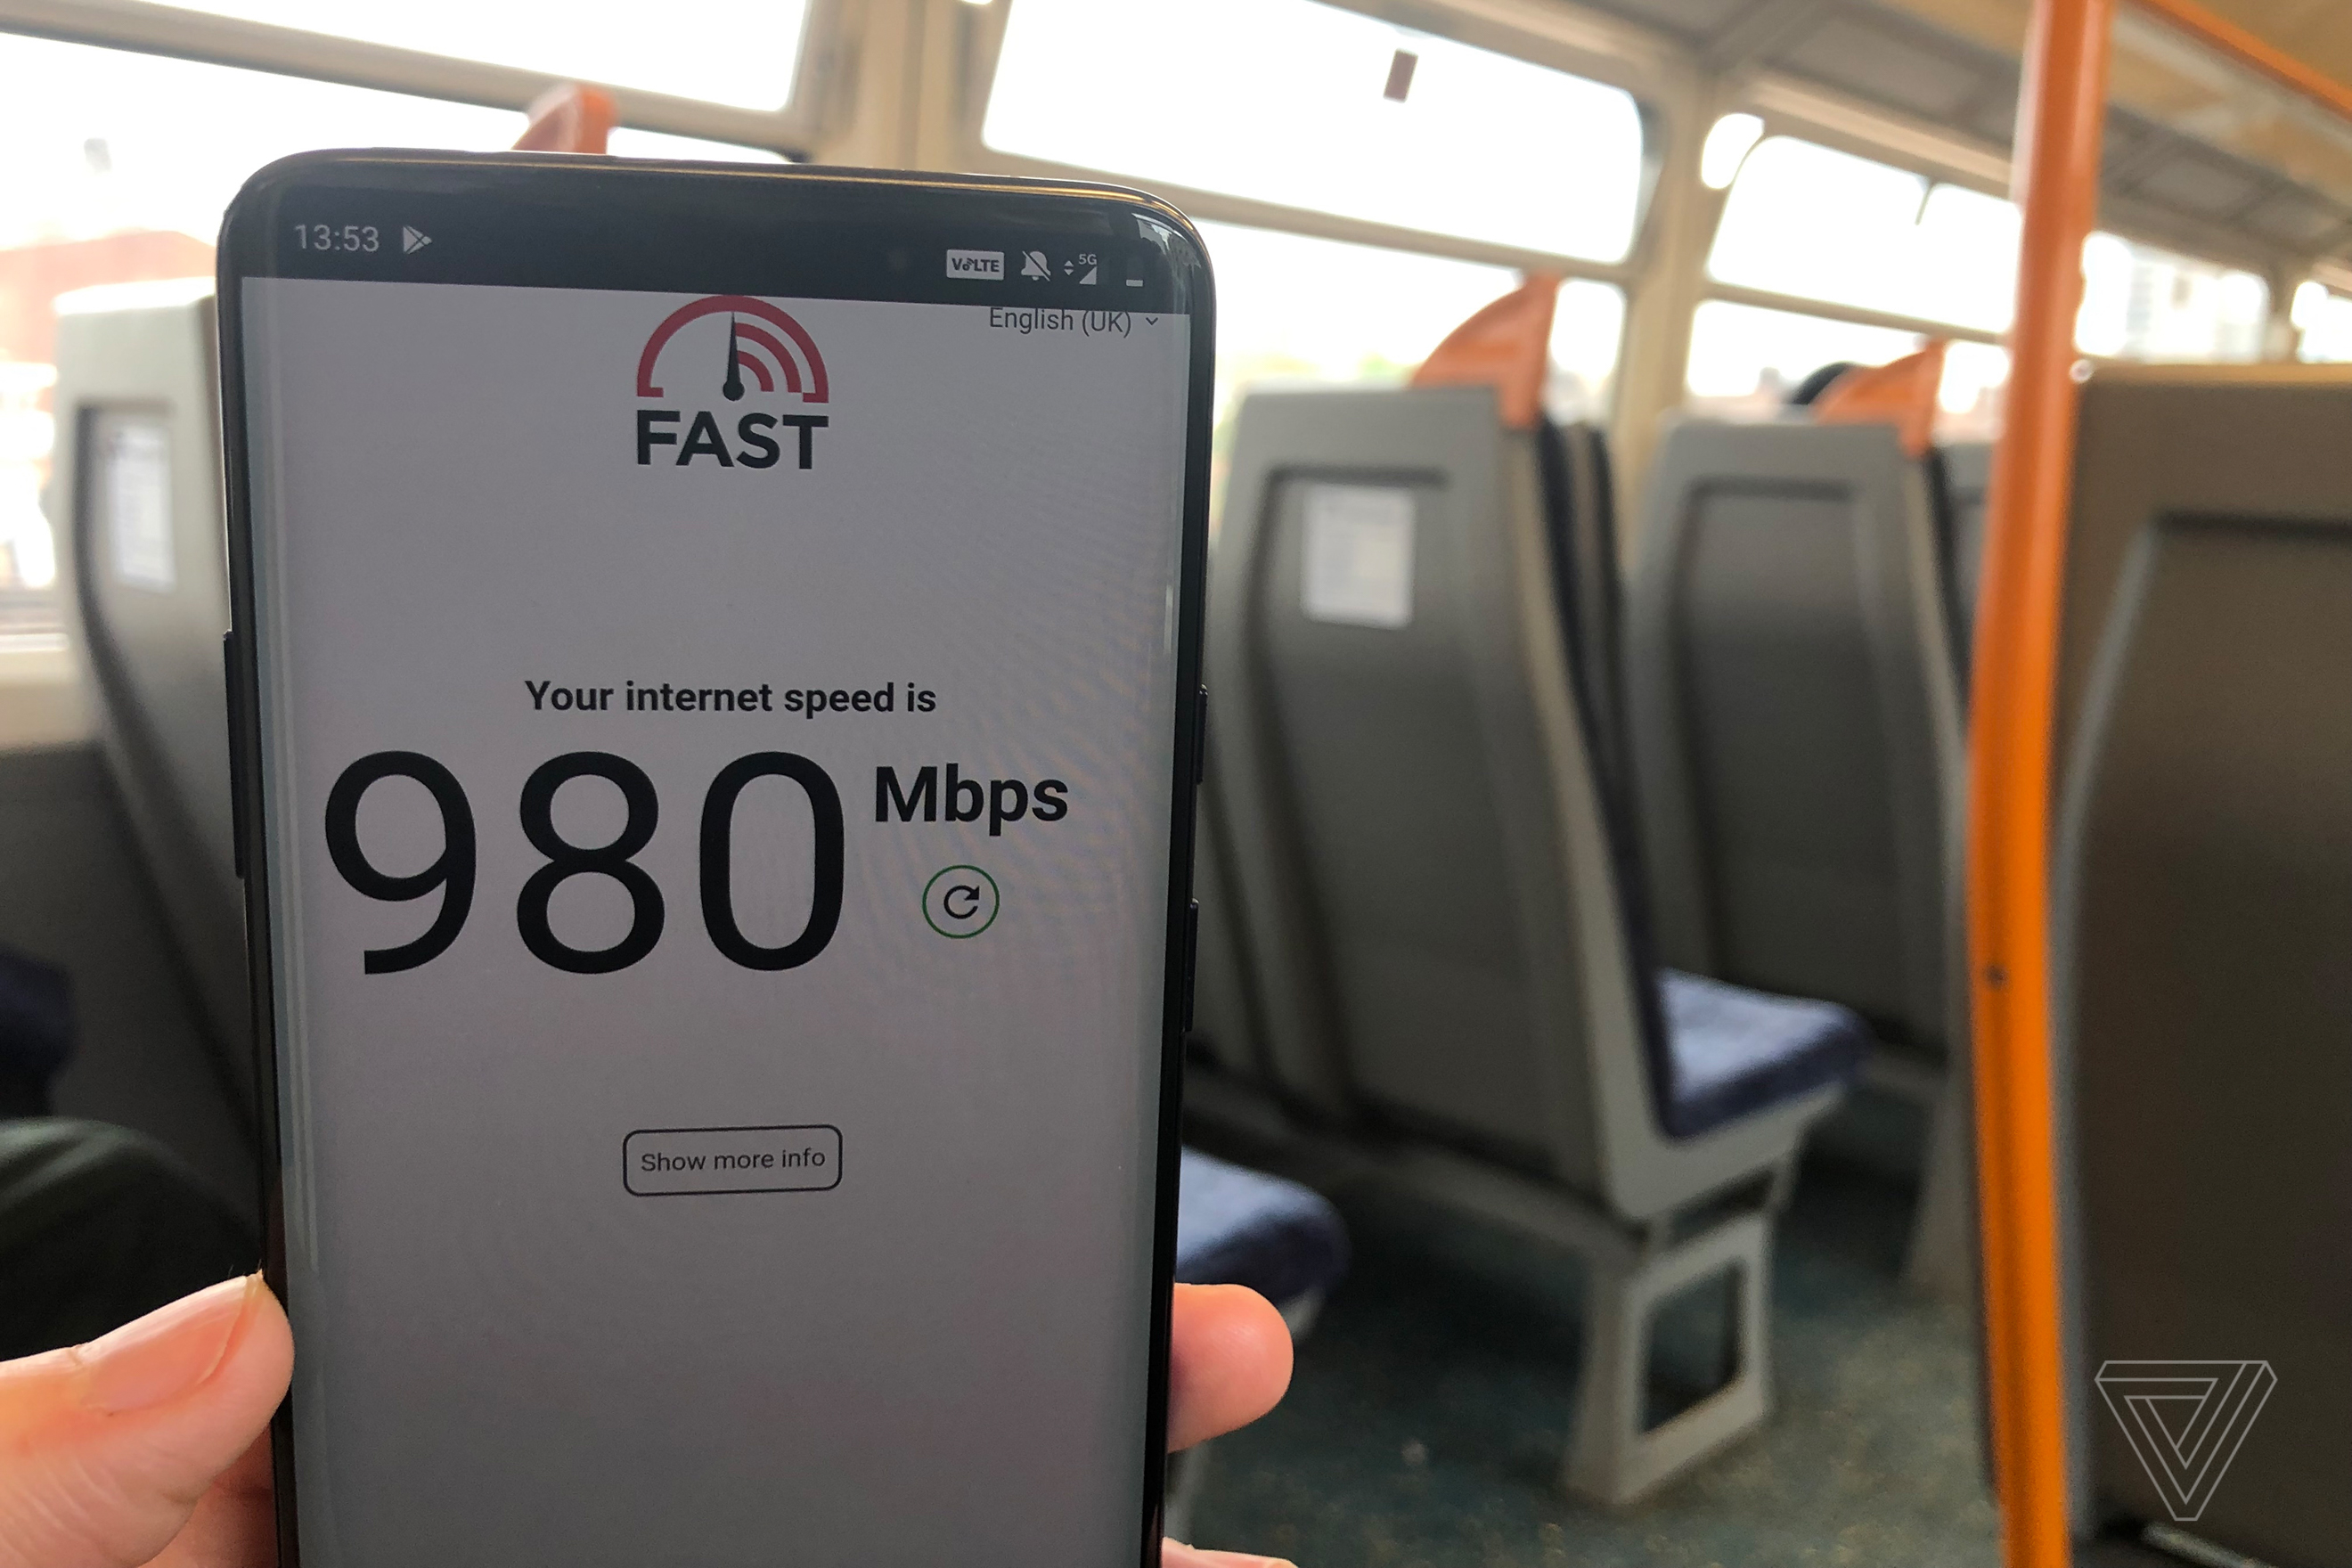 5G has arrived in the UK, and it's fast - The Verge